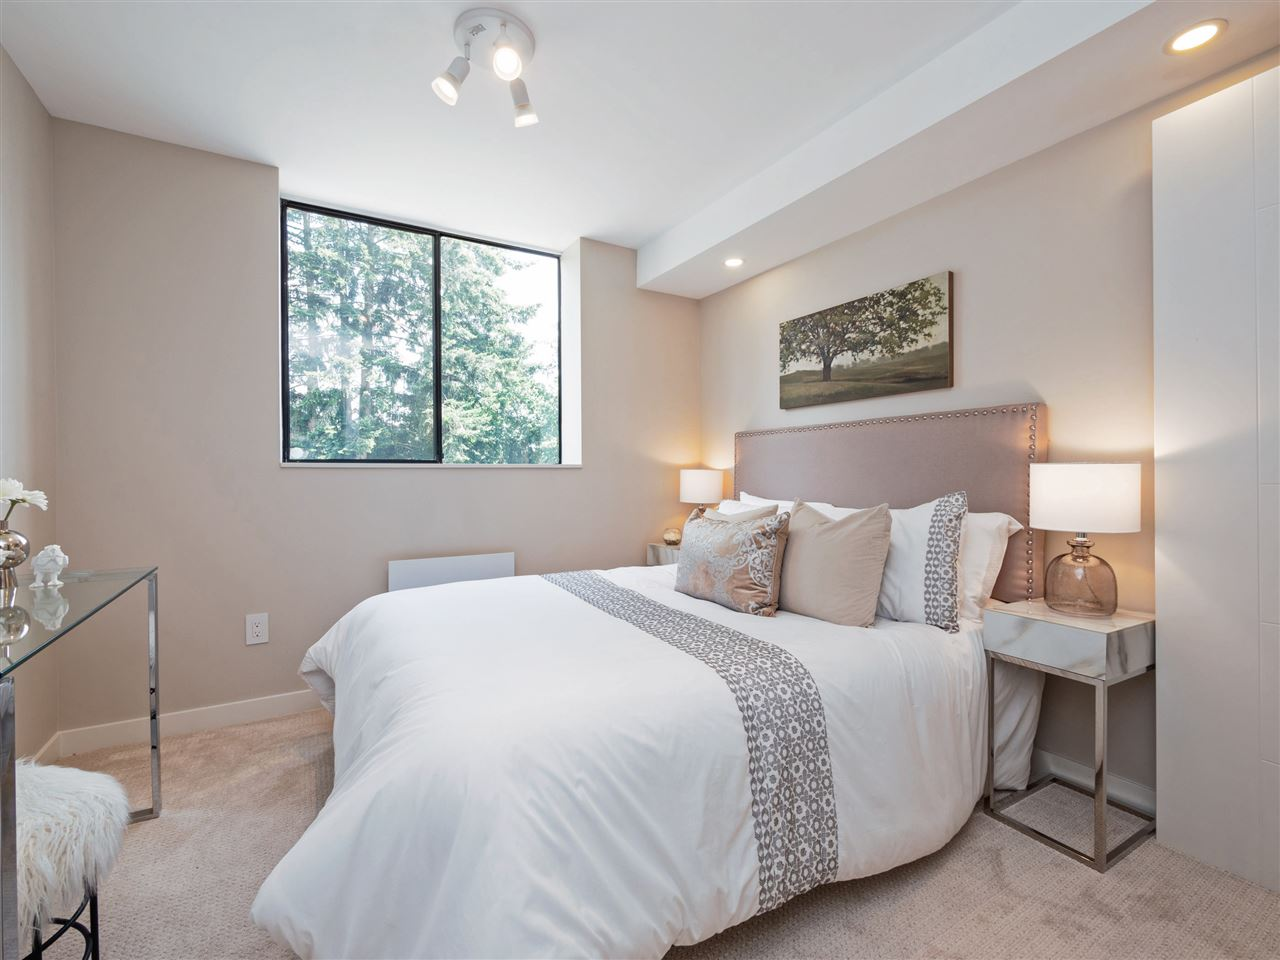 201 475 13TH STREET - Ambleside Apartment/Condo for sale, 3 Bedrooms (R2475640) - #21